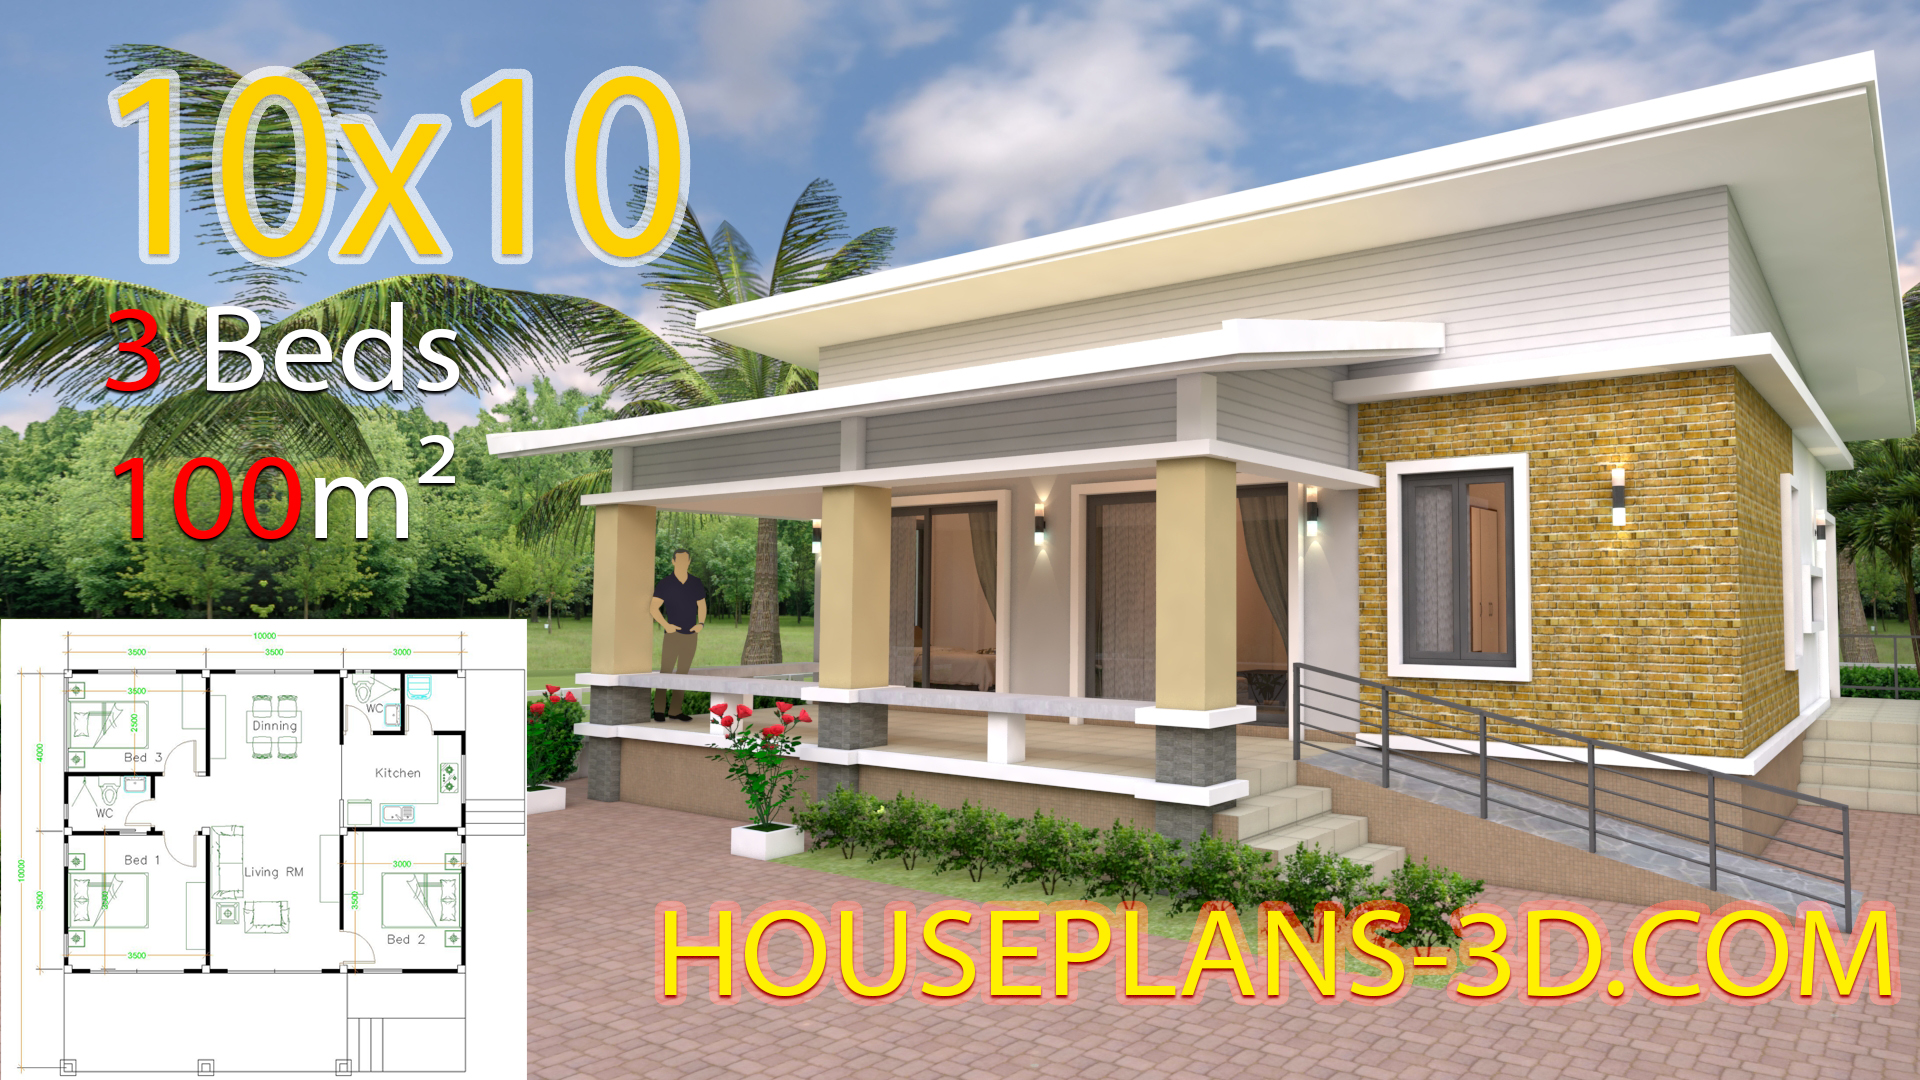 House Design 10x10 With 3 Bedrooms Full Interior House Plans 3d